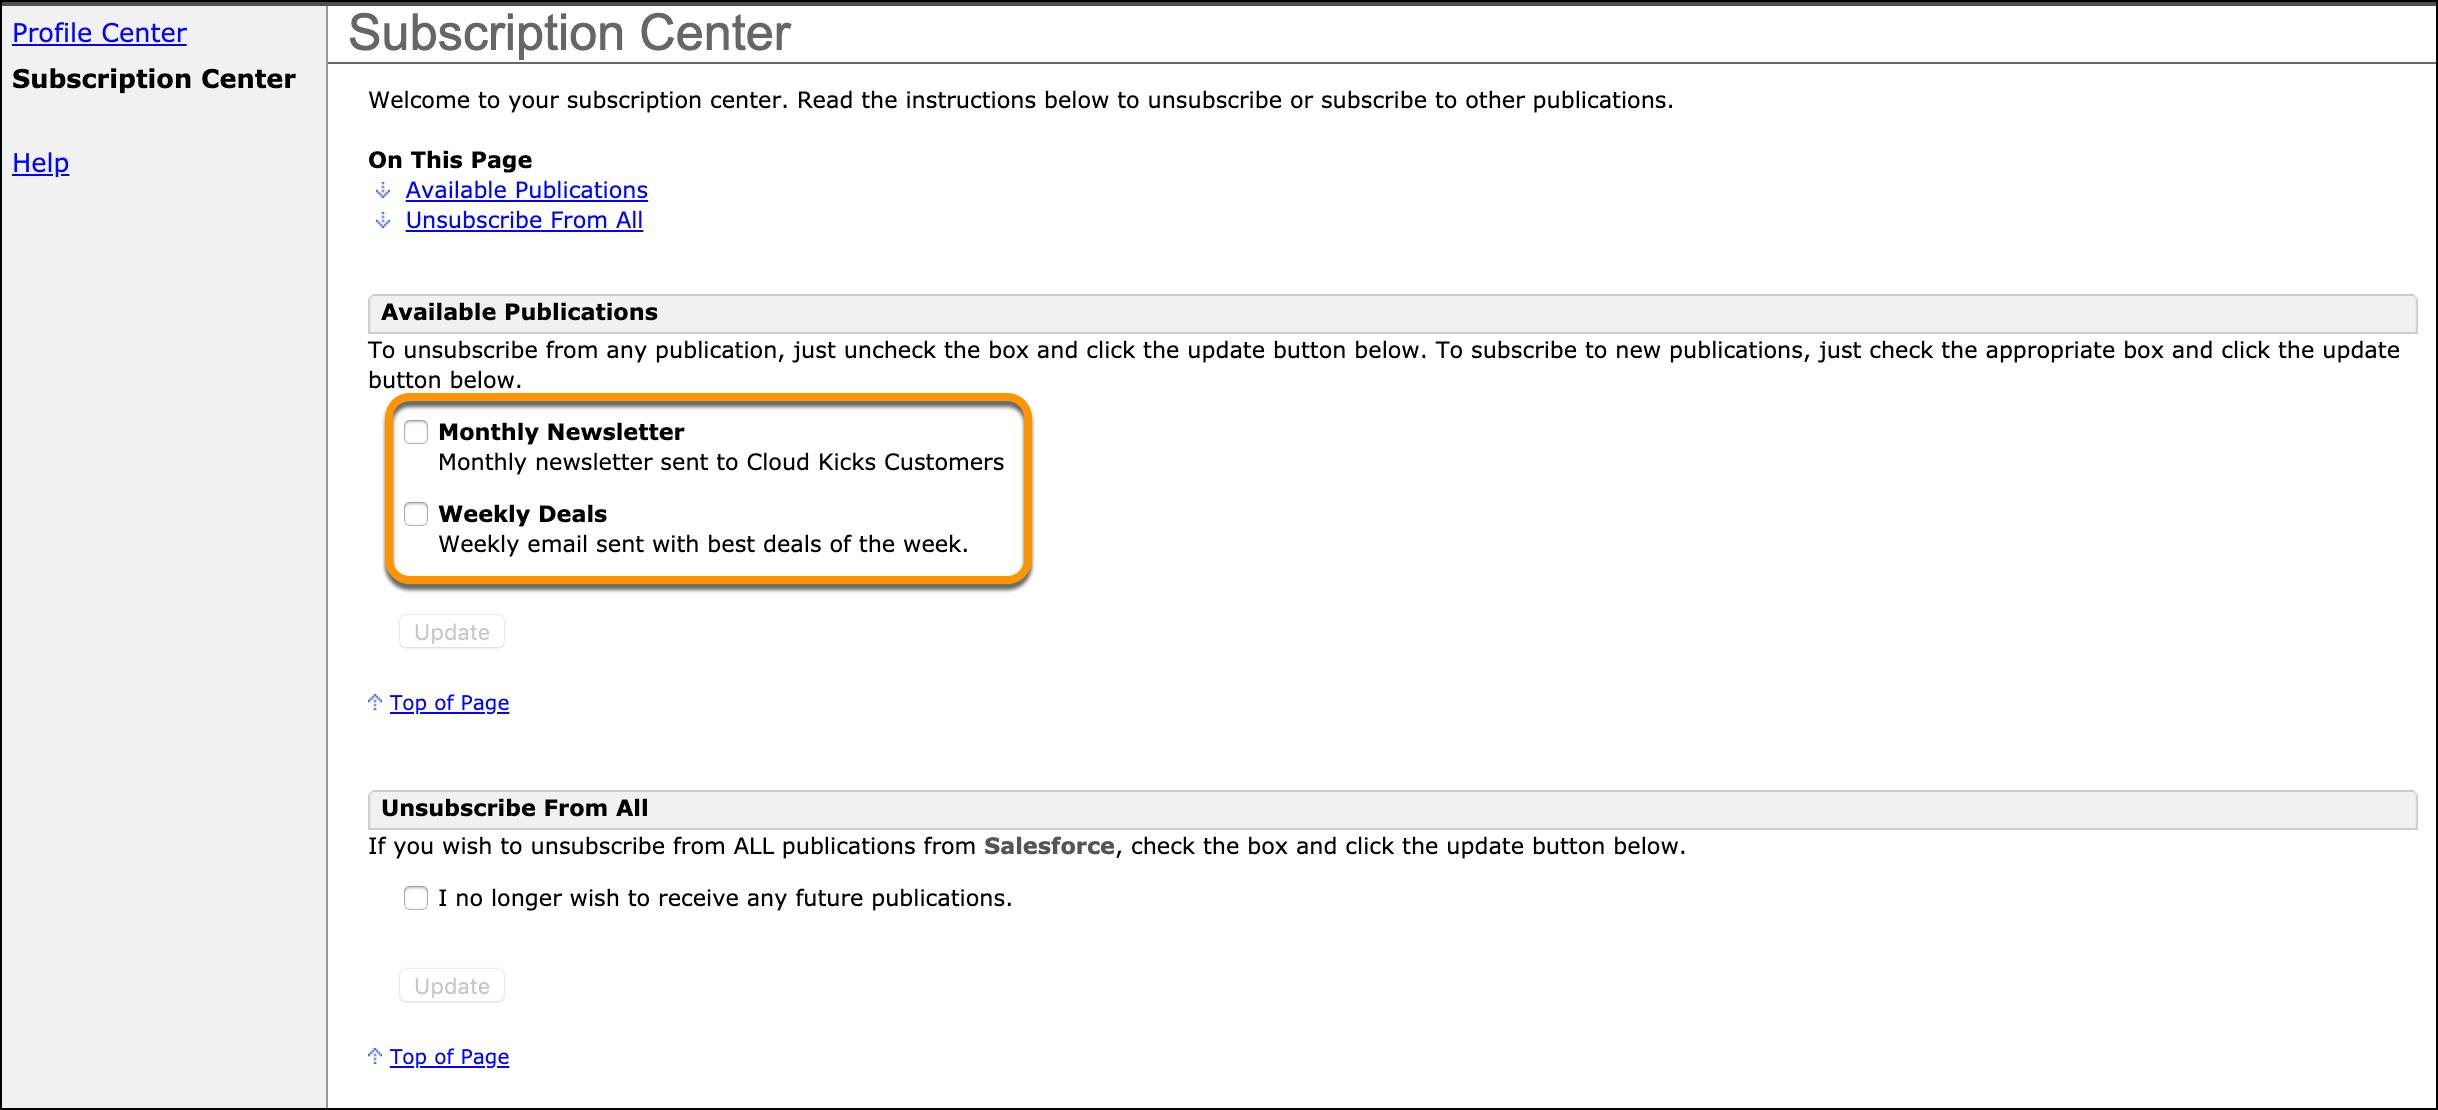 Subscription Center example with callouts for specific publication lists.